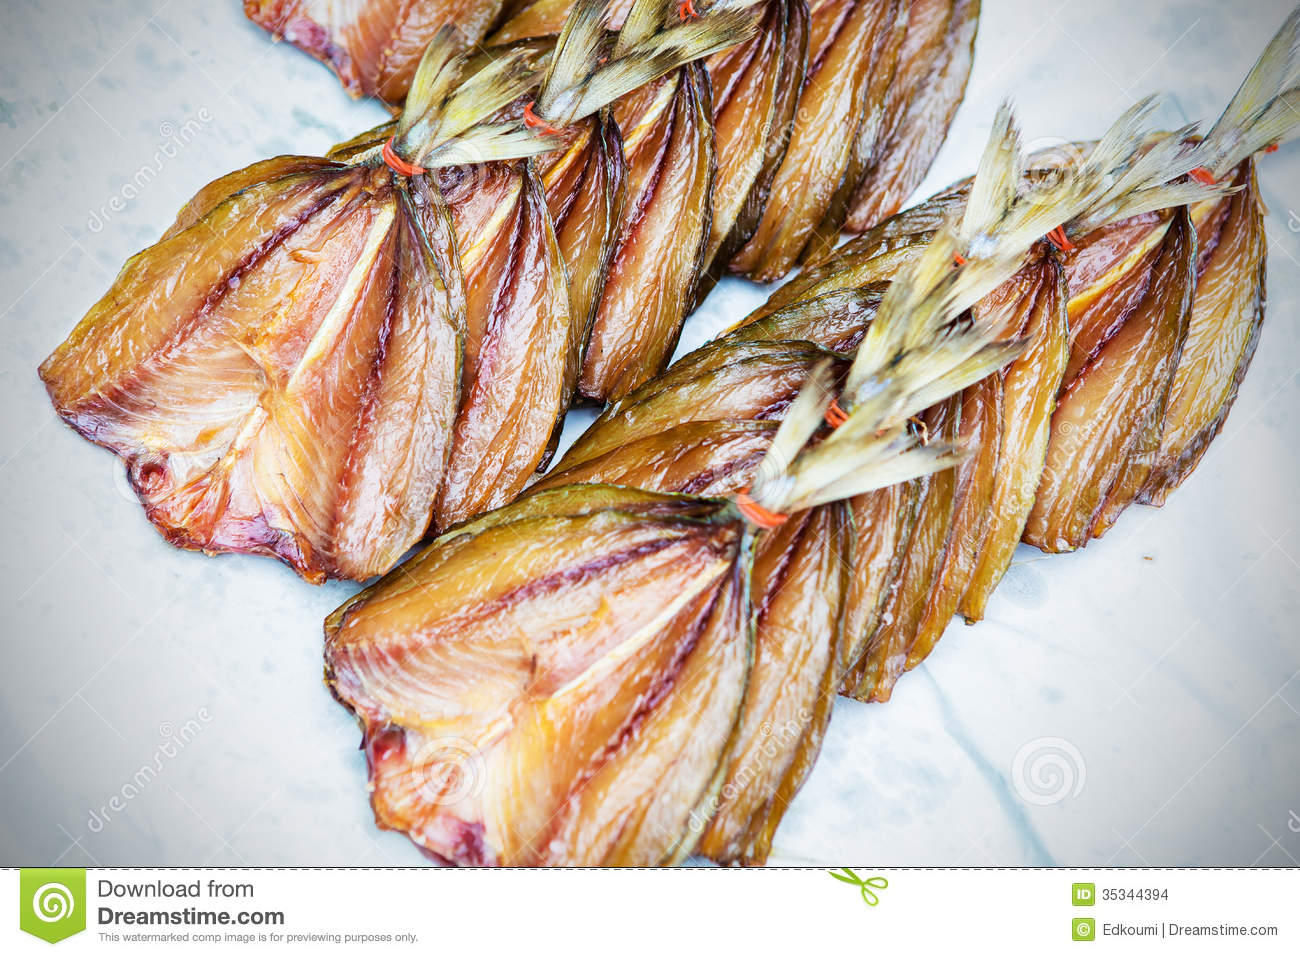 Dried Salted Fish On The Market Stock Photo - Image of abundance ... for Dried Fish Clipart  54lyp